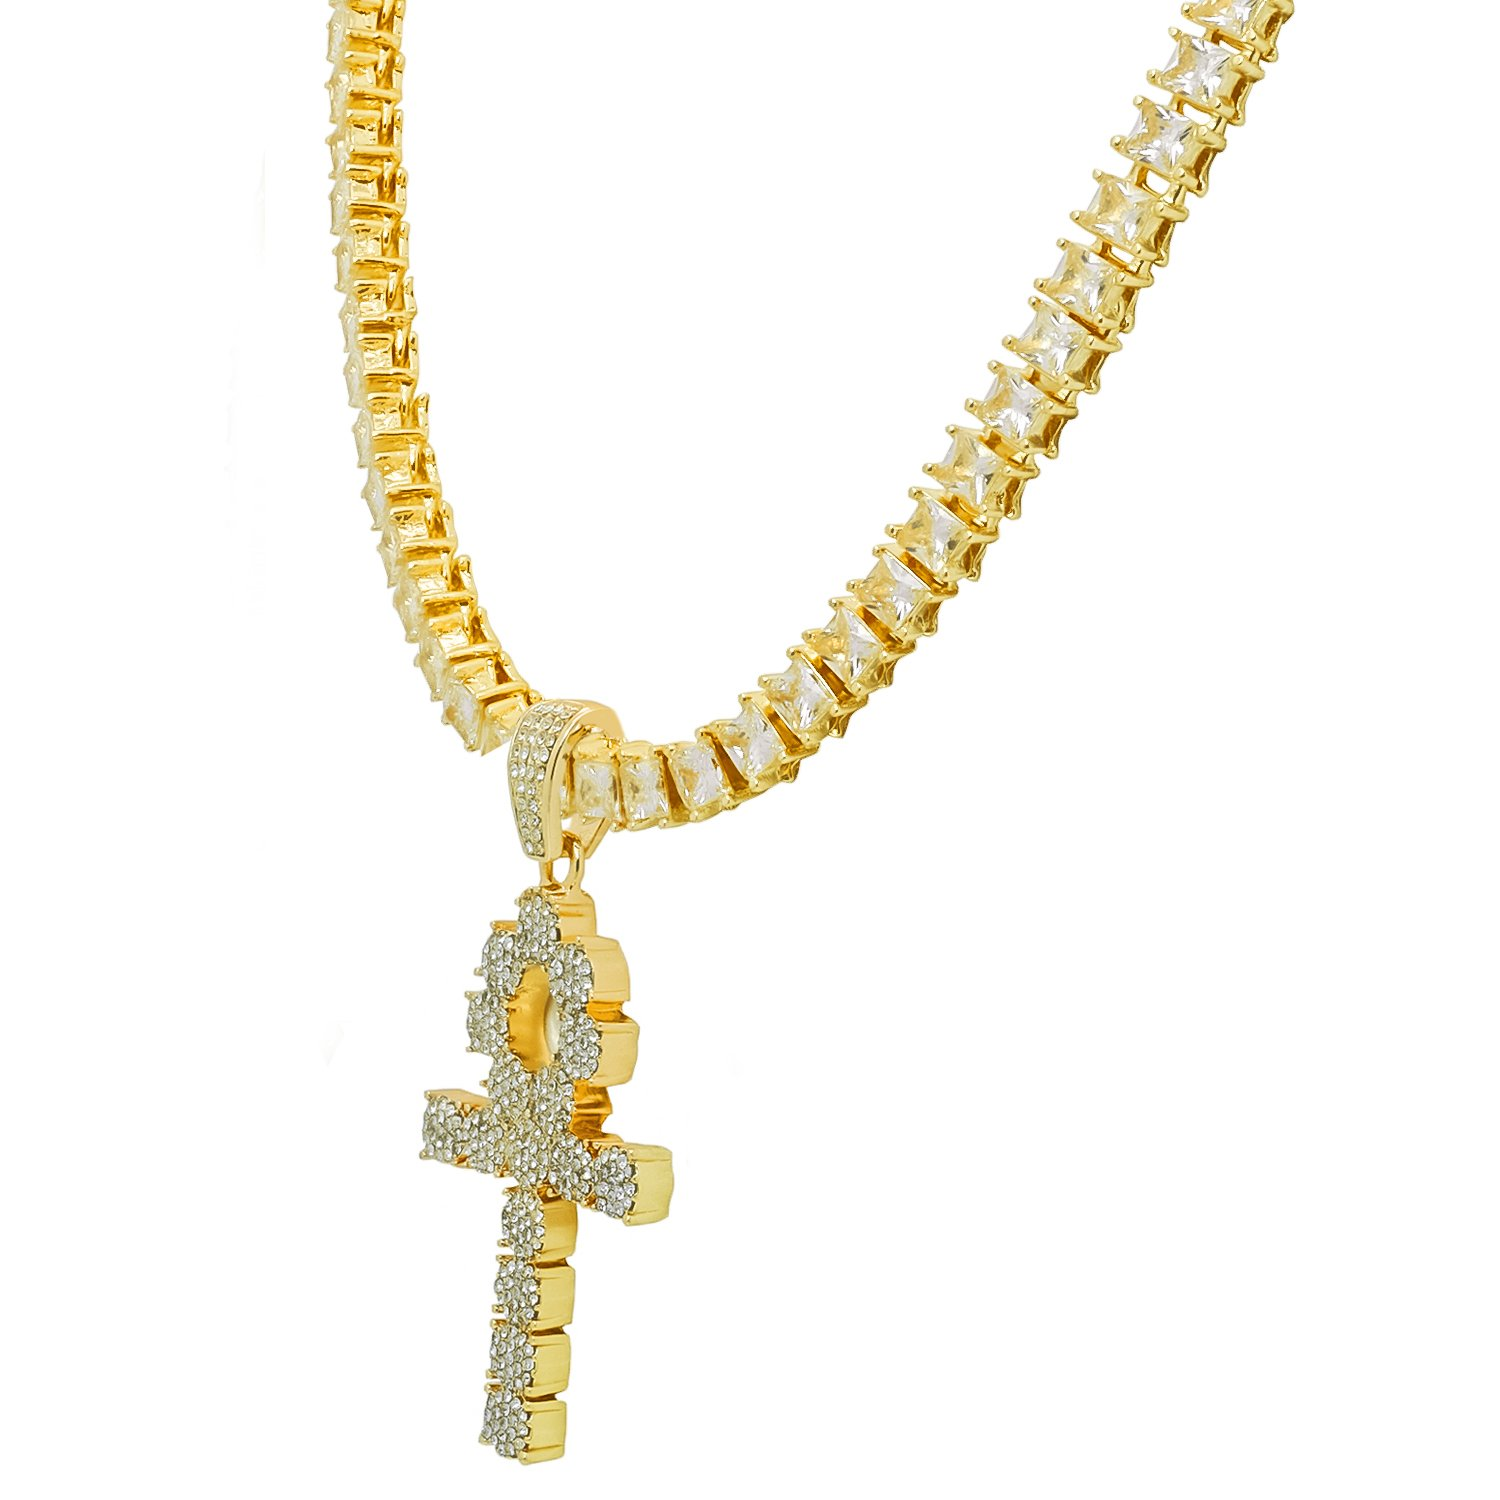 Yellow Gold-Tone Iced Out Hip Hop Bling Symbol Of Life Ankh Cross Pendant 1 Row Square Cubic Zirconia Princess Cut Stones Tennis Chain 18 Necklace Choker Chain